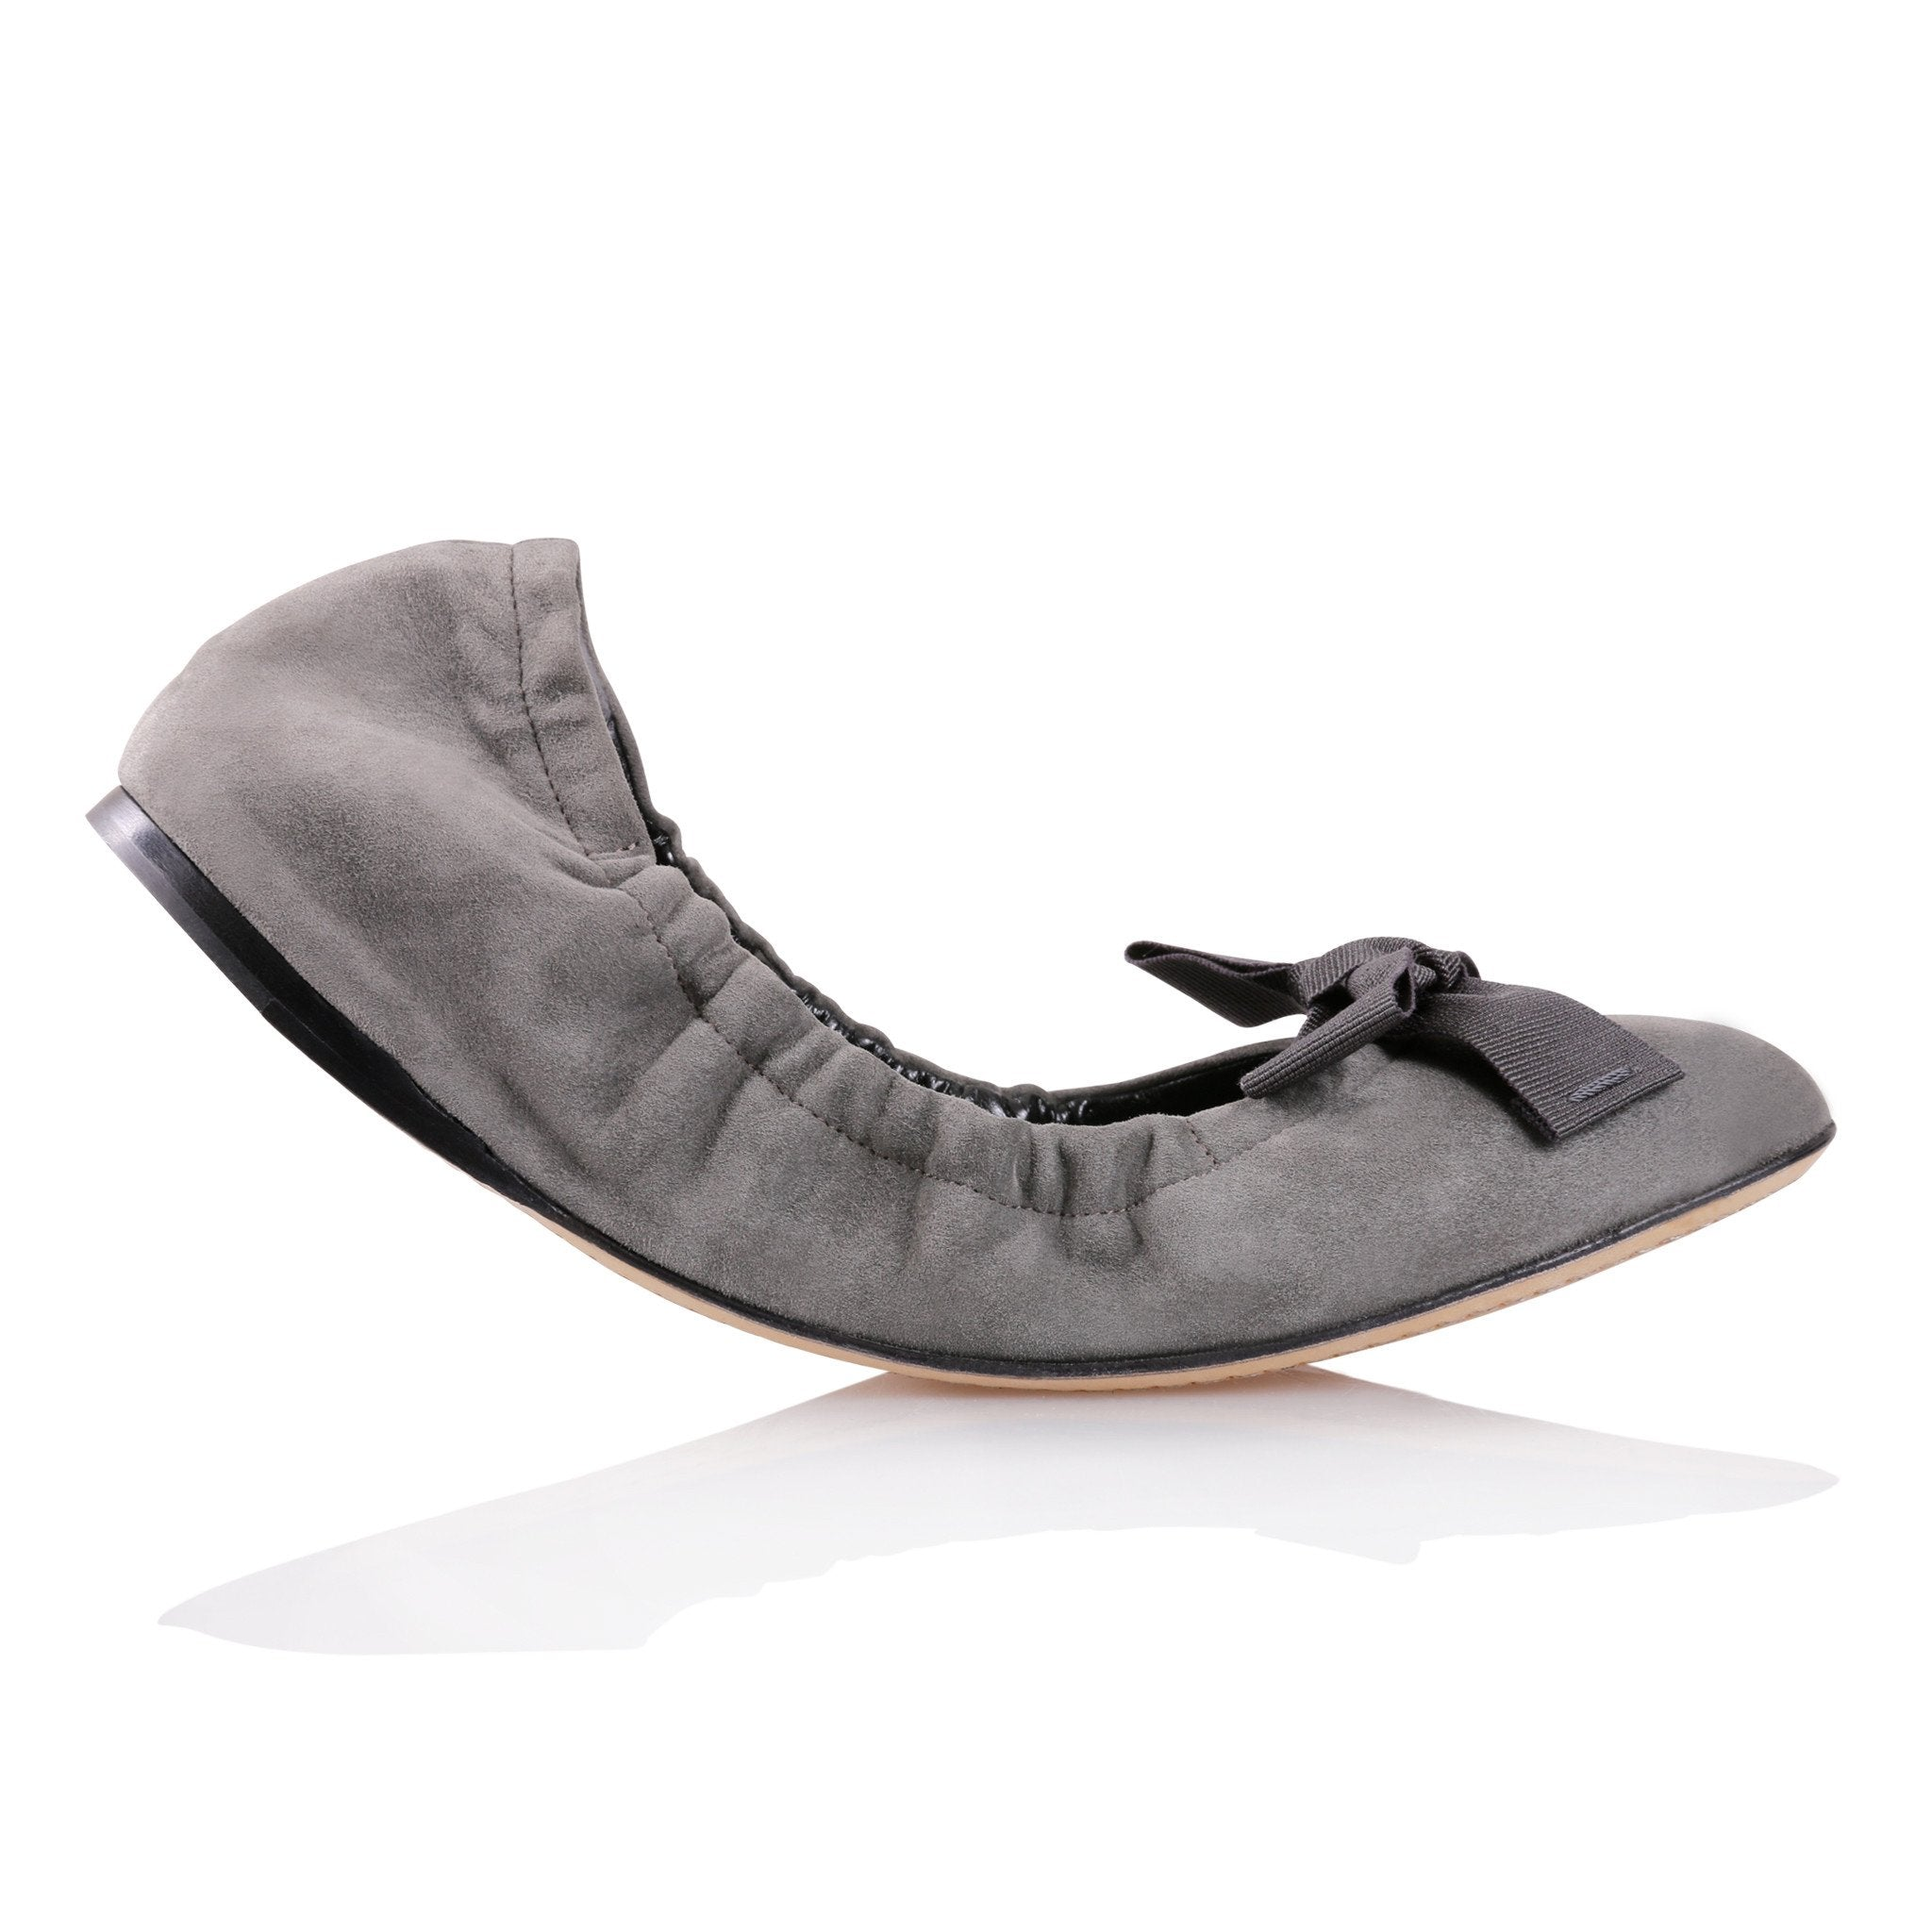 PORTOFINO - Velukid Anthracite + Grosgrain Ferro Bow, VIAJIYU - Women's Hand Made Sustainable Luxury Shoes. Made in Italy. Made to Order.